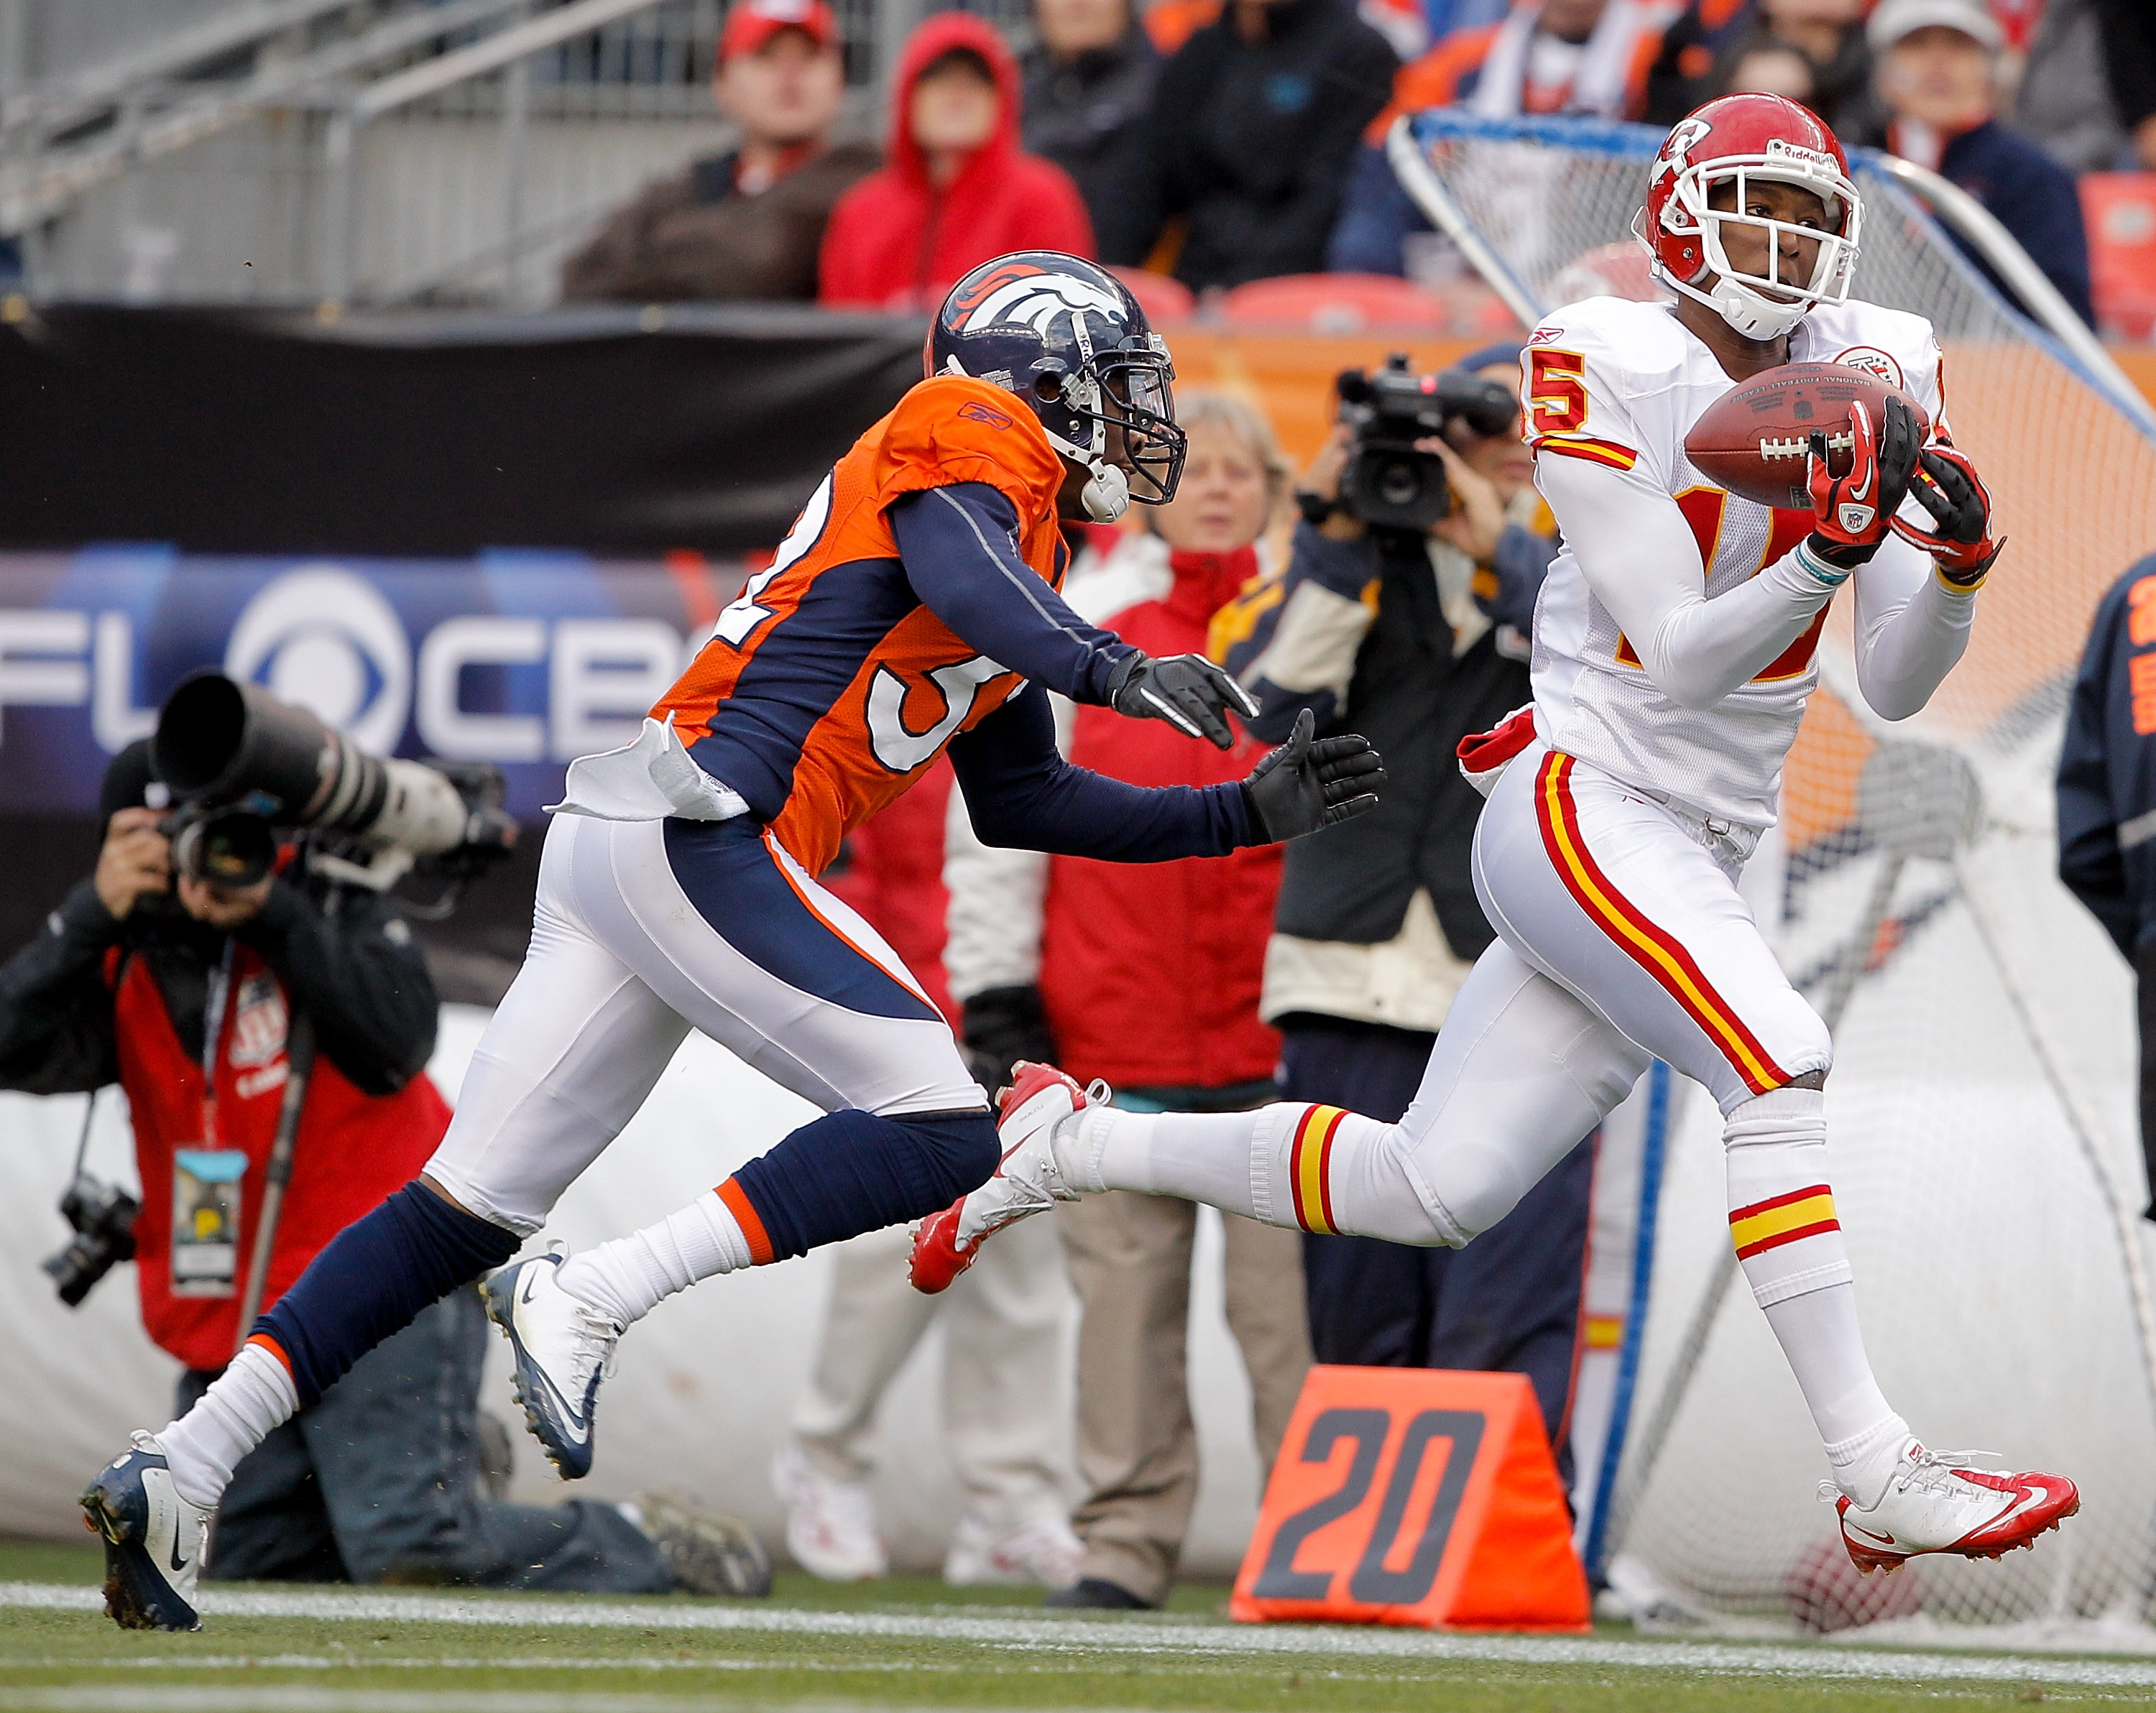 DENVER - NOVEMBER 14:  Wide receiver Verran Tucker #15 of the Kansas City Chiefs makes a reception against cornerback Perrish Cox #32 of the Denver Broncos during the second quarter at INVESCO Field at Mile High on November 14, 2010 in Denver, Colorado. (